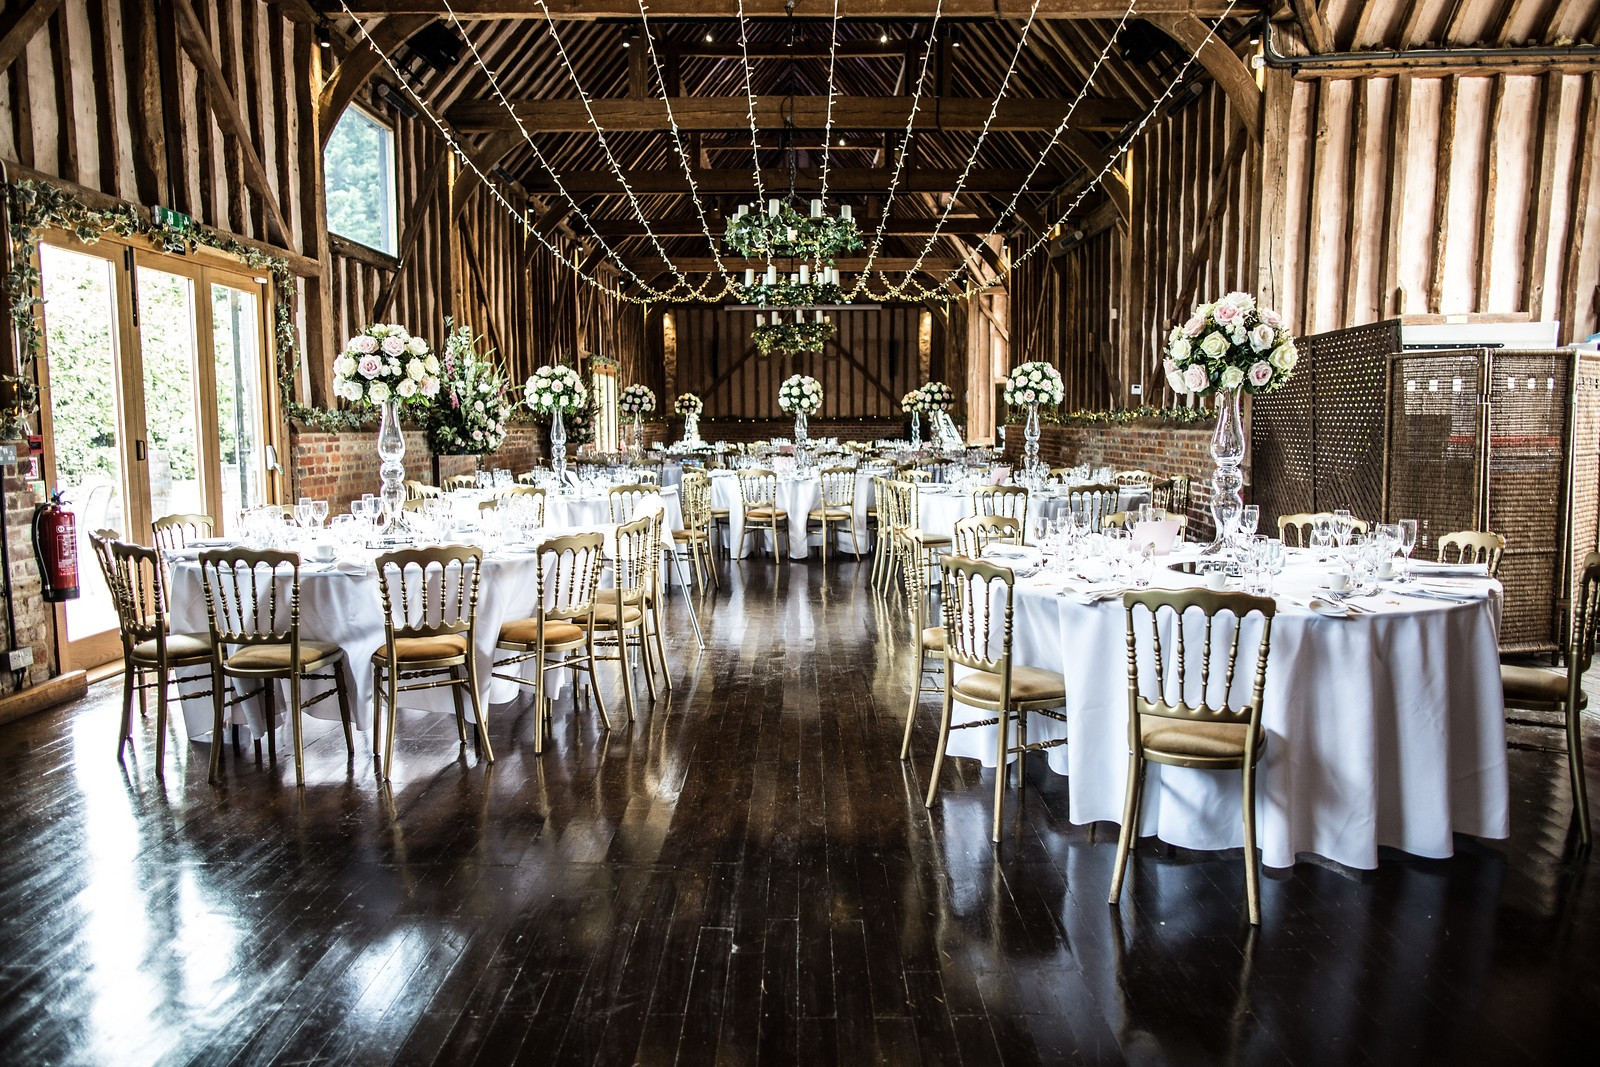 Lillibrooke Manor Barns | Barn Wedding Venues | WeddingPlanner.co.uk